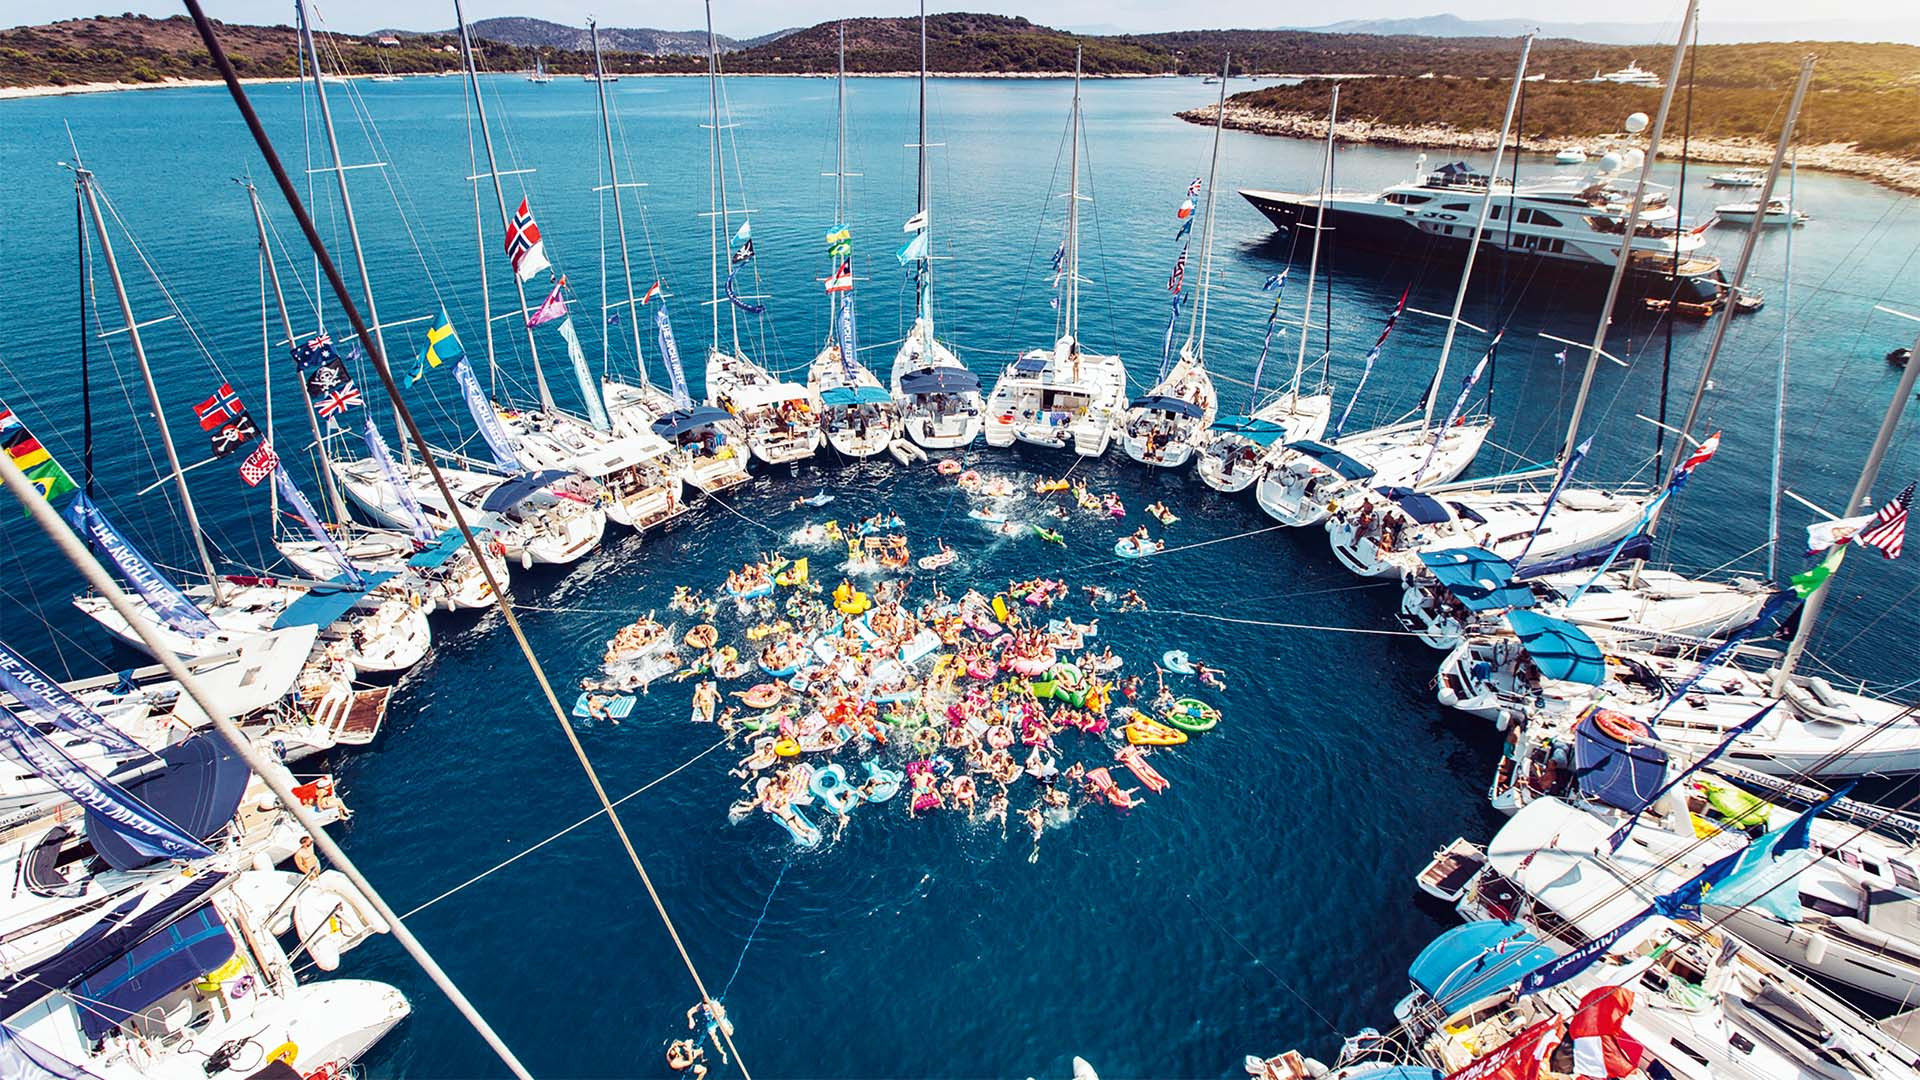 Yachts and people partying in the British Virgin Islands